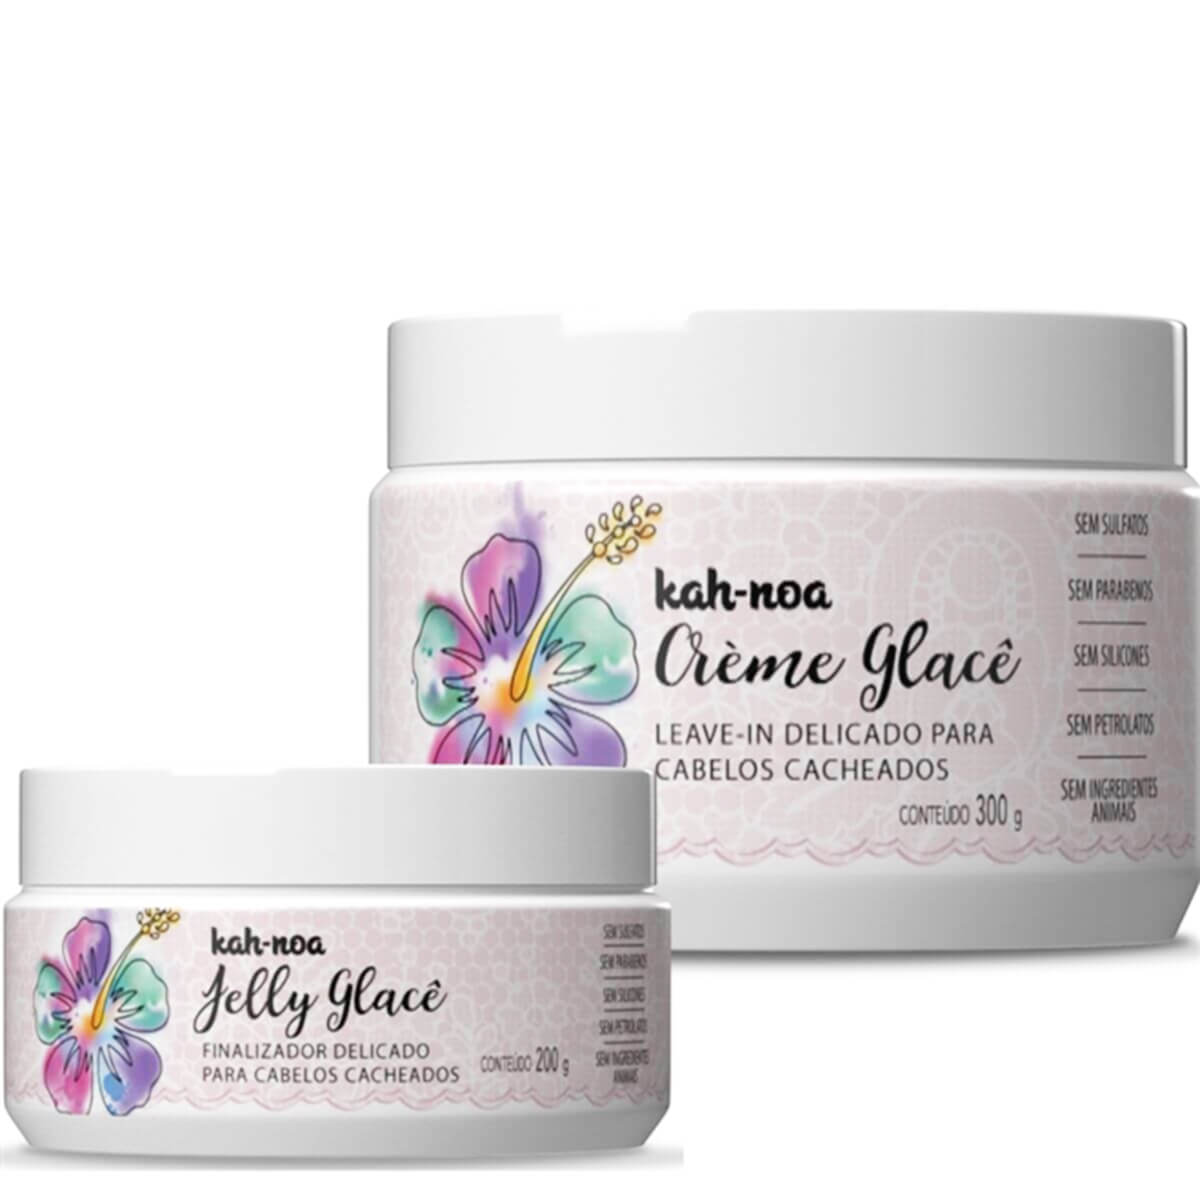 Kit Creme e Jelly Glacê - Kah-Noa